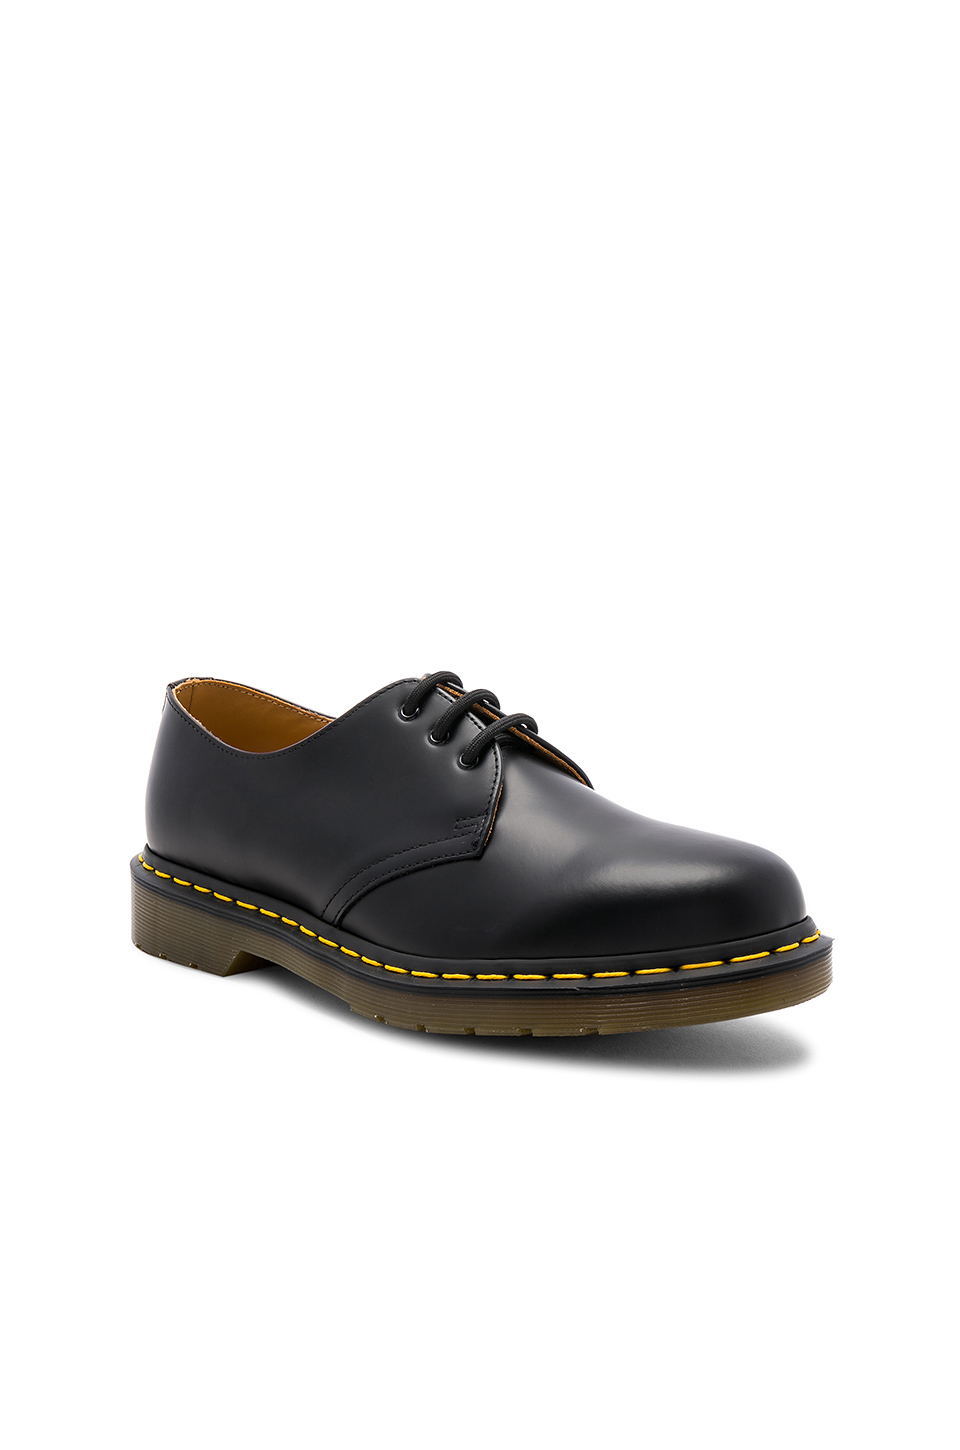 Dr. Martens 1461 3 Eye Gibson in Black